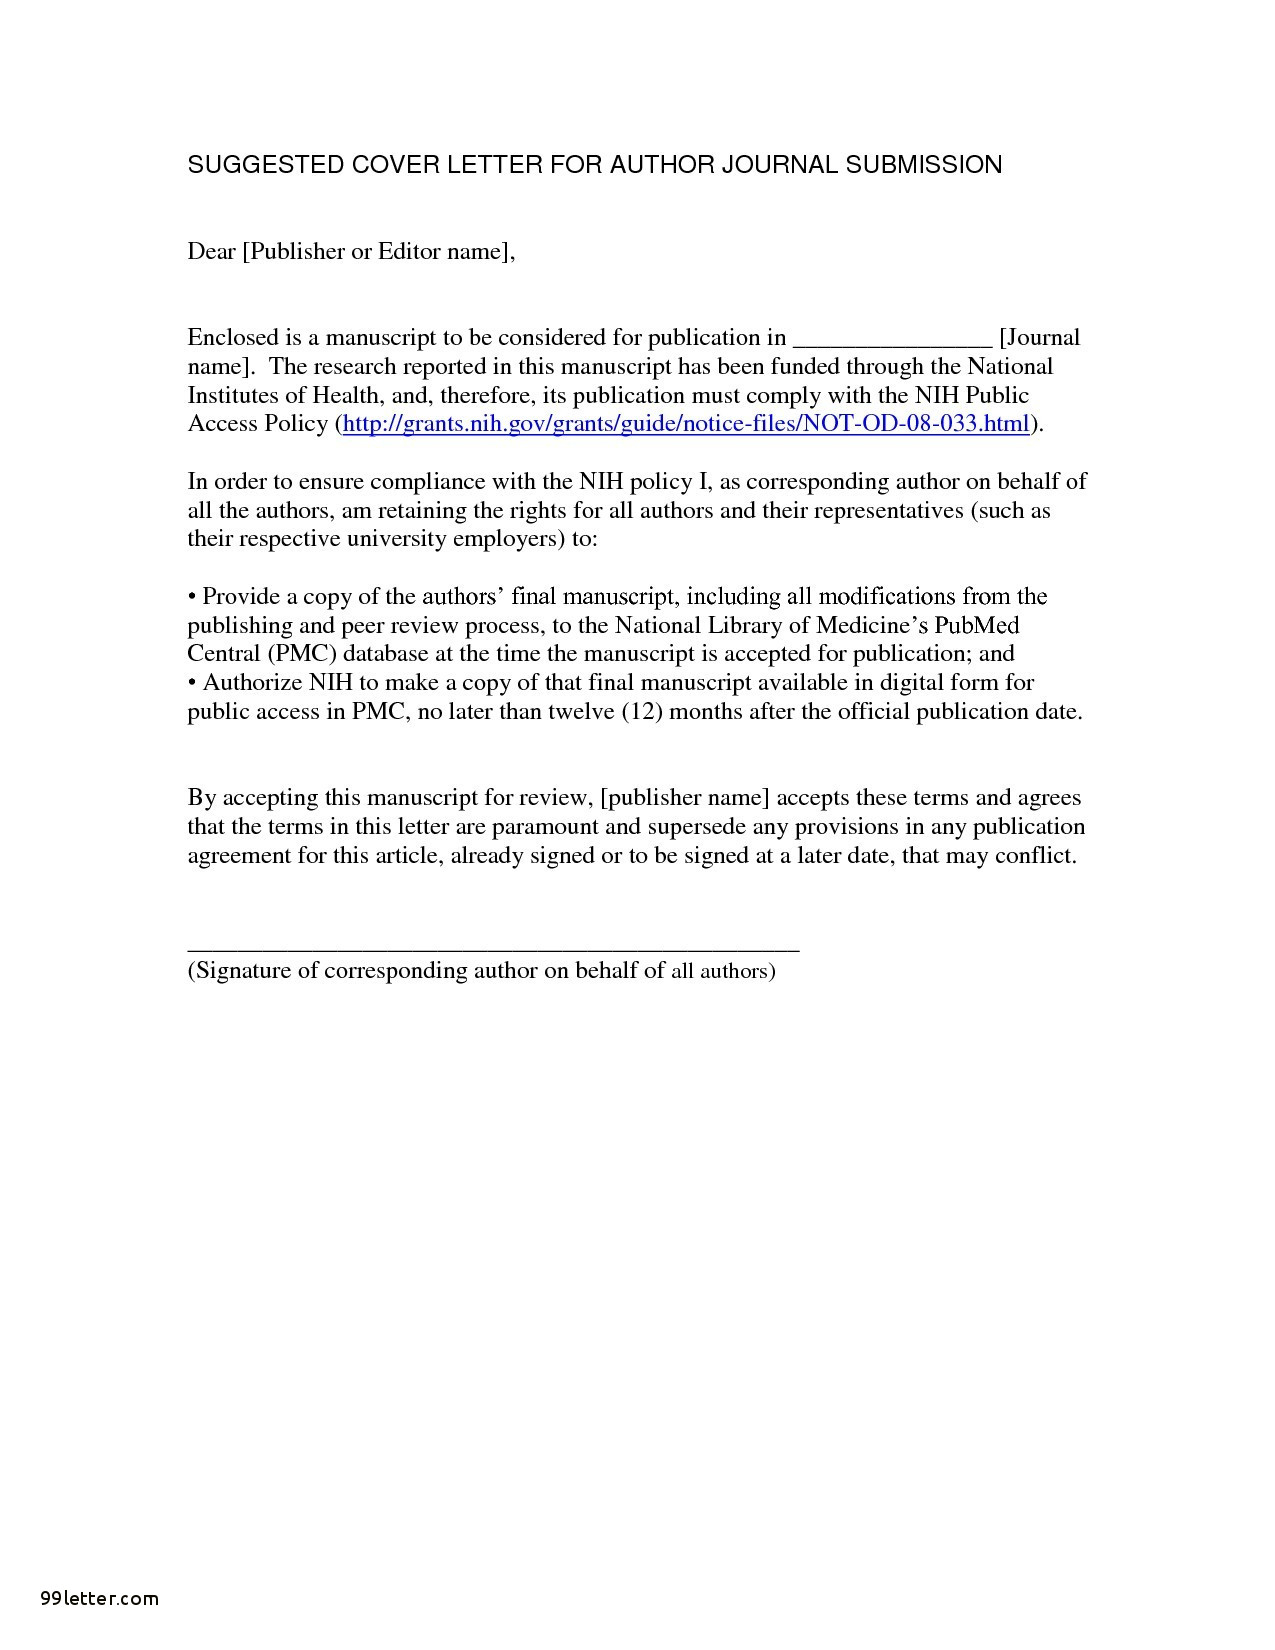 letter of intent for a job template example-Business Letter format and Example Luxury Writing A Letter Intent for A Job Fresh Lovely Business Letter 18-i